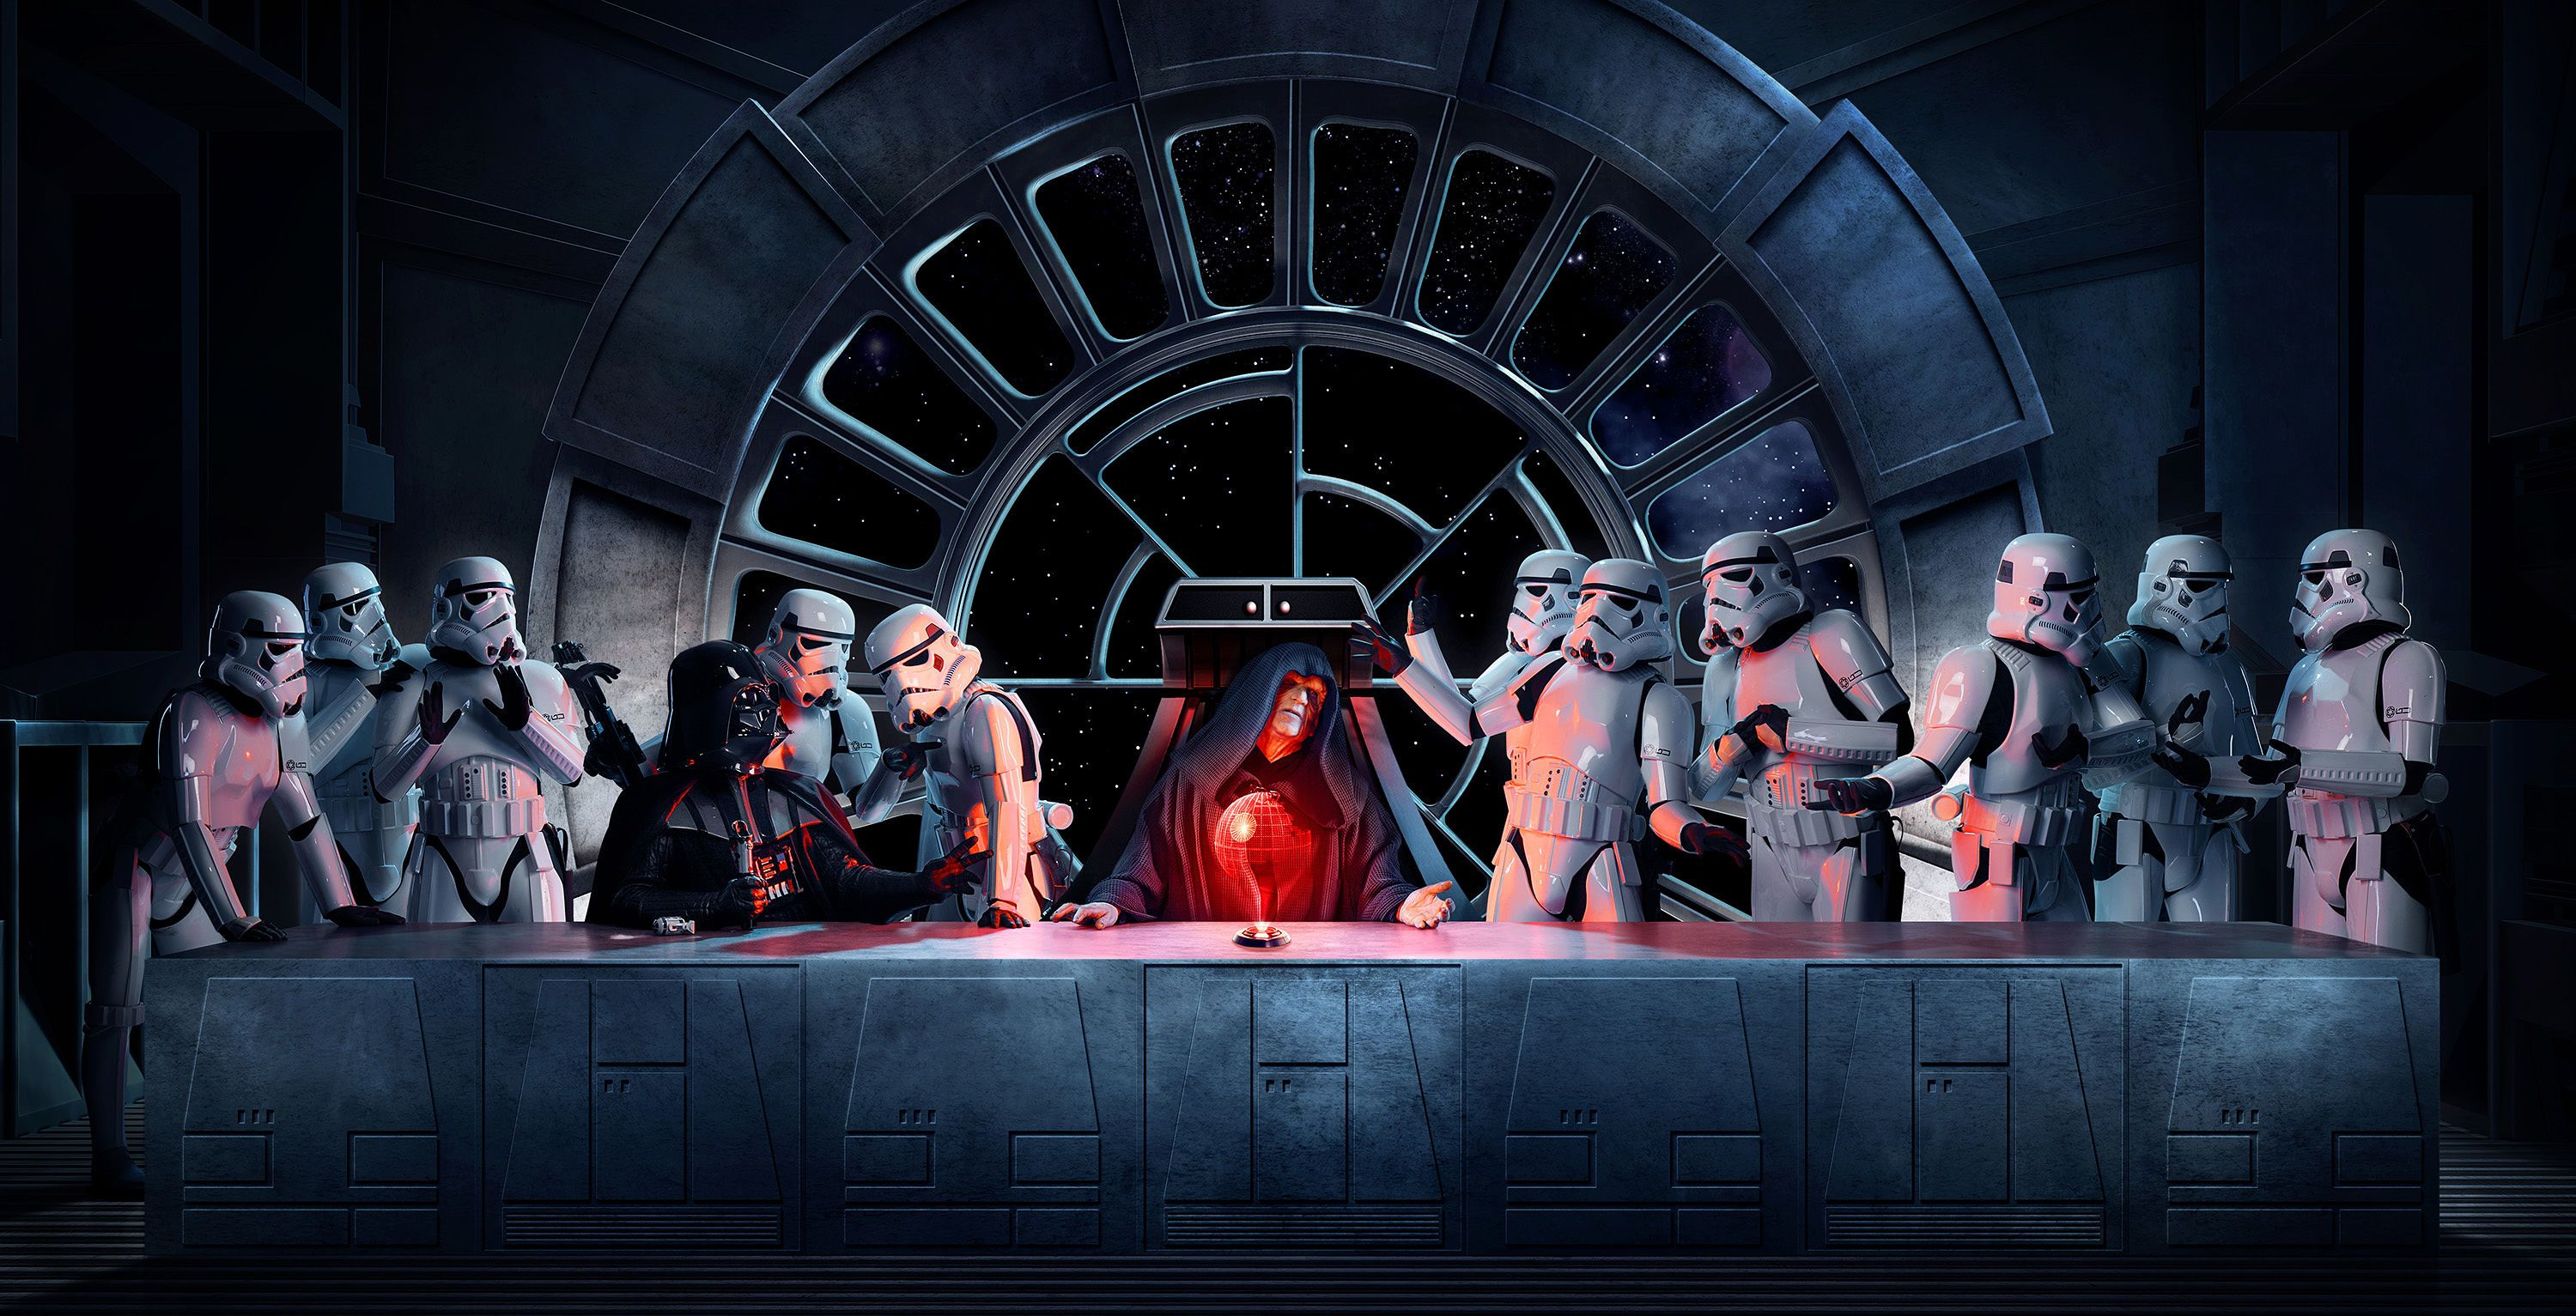 Star Wars The Last Supper Remaking A Classic Image Star Wars Awesome Star Wars Wallpaper Last Supper